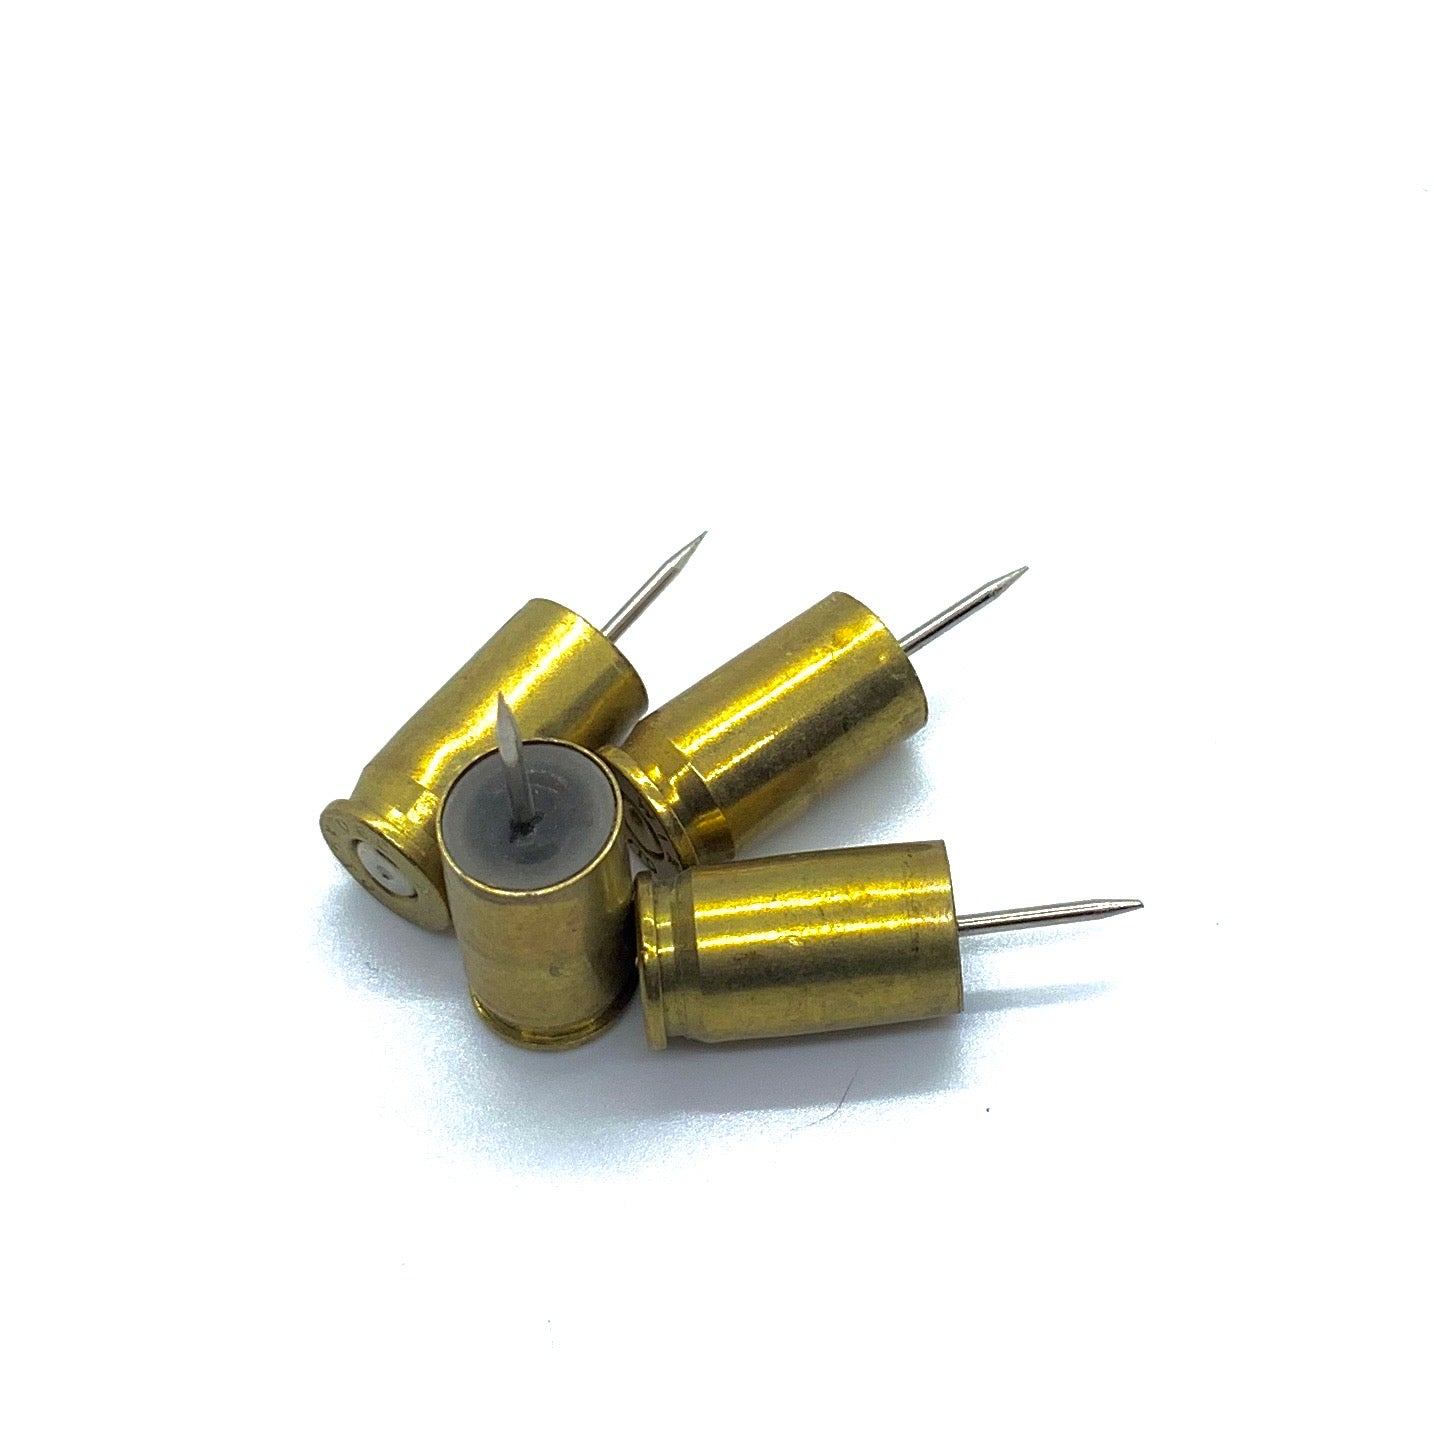 380 Auto Spent Brass Push Pins, 4 ct